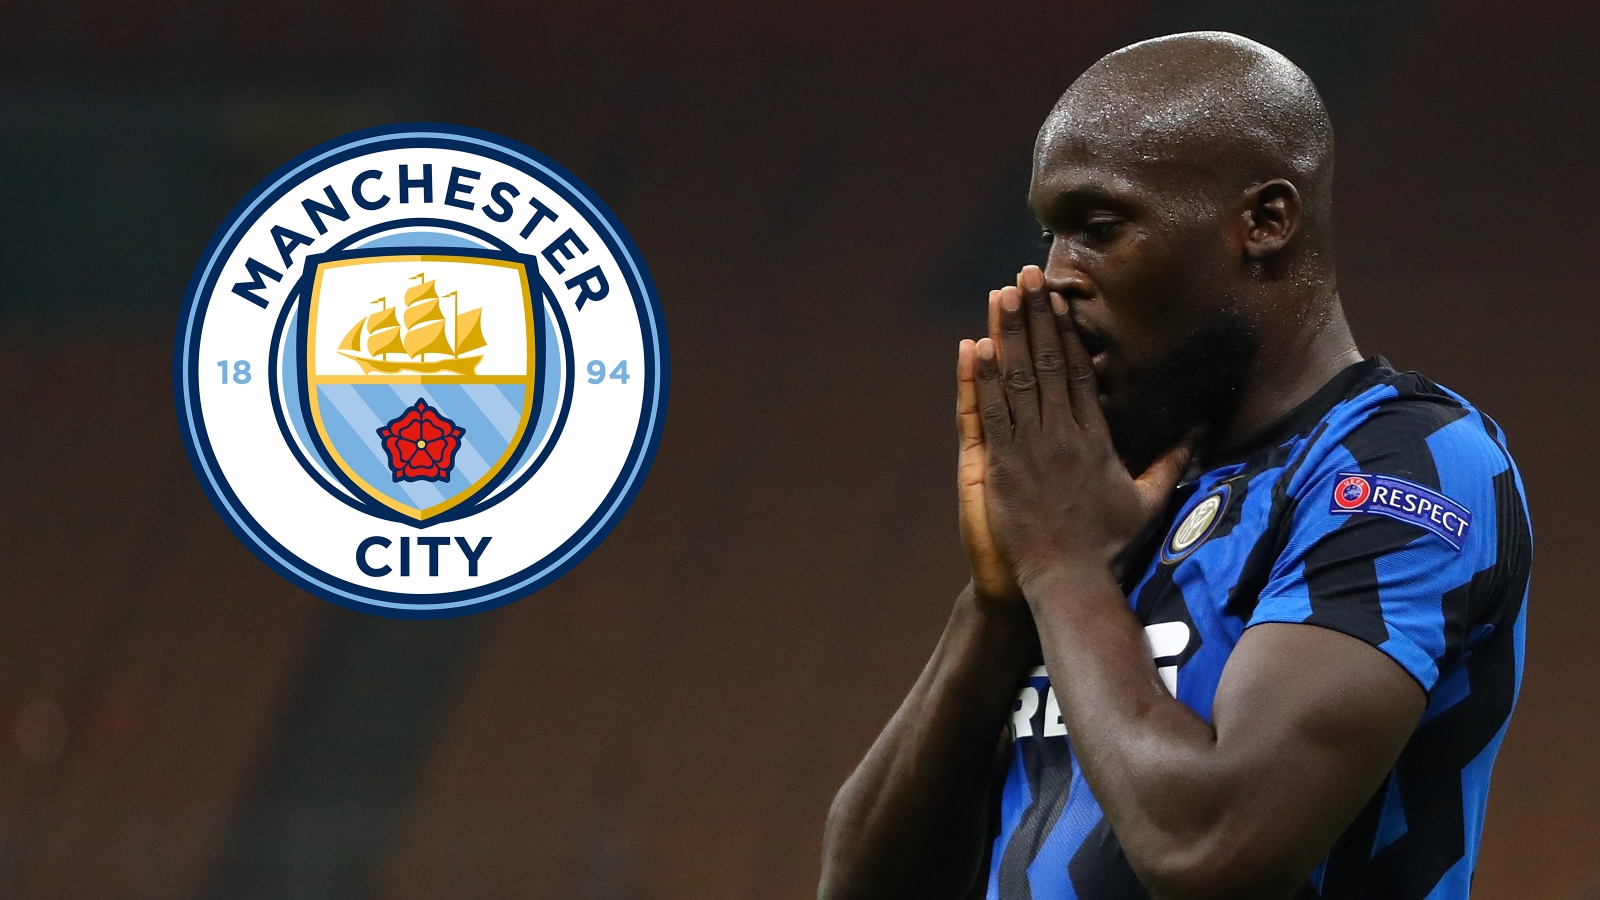 Transfer news and rumours LIVE: Man City considered Lukaku move